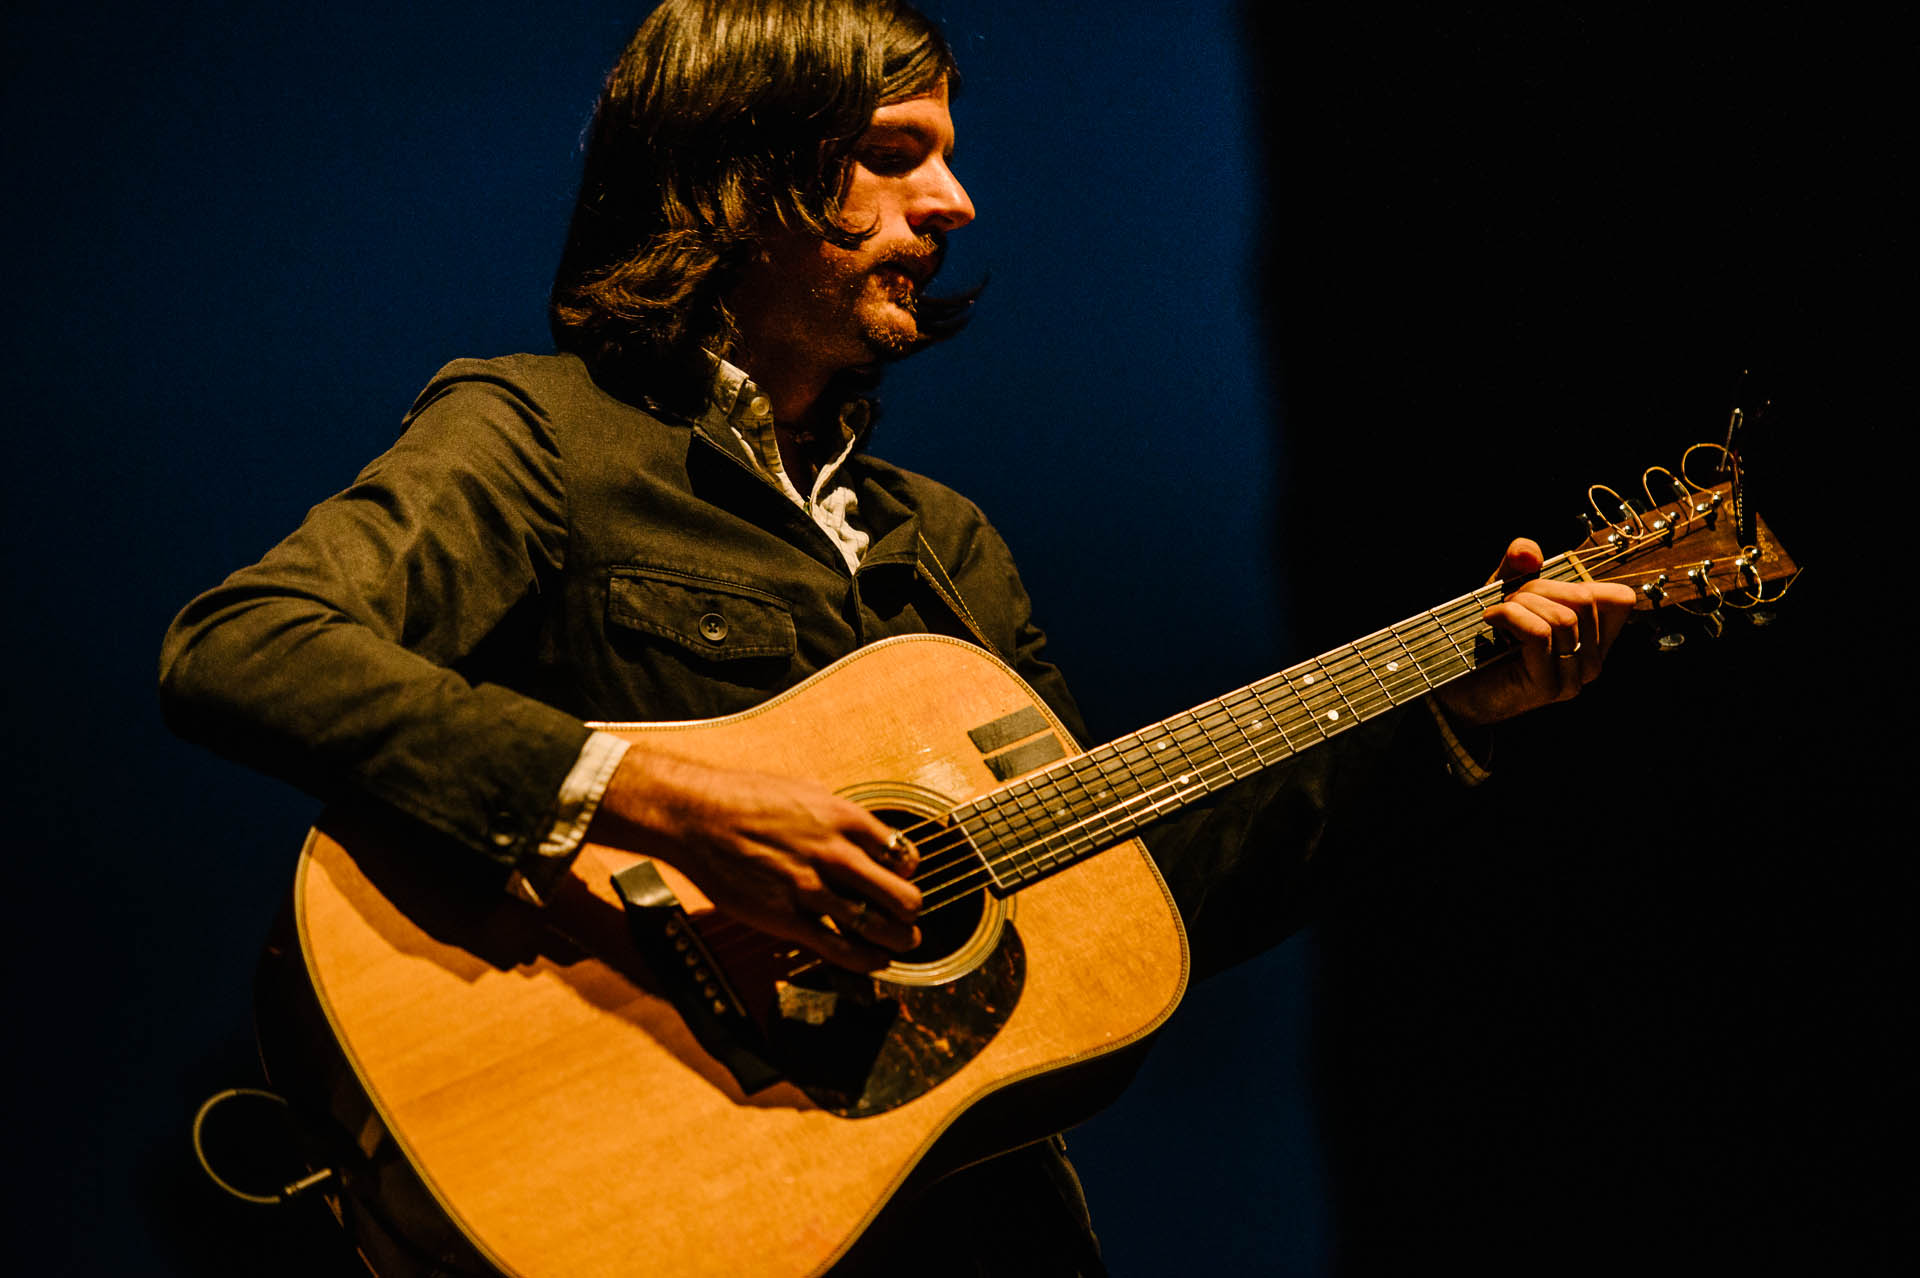 avett_brothers_the_lawn_white_river_state_park_indianapolis_093012-35